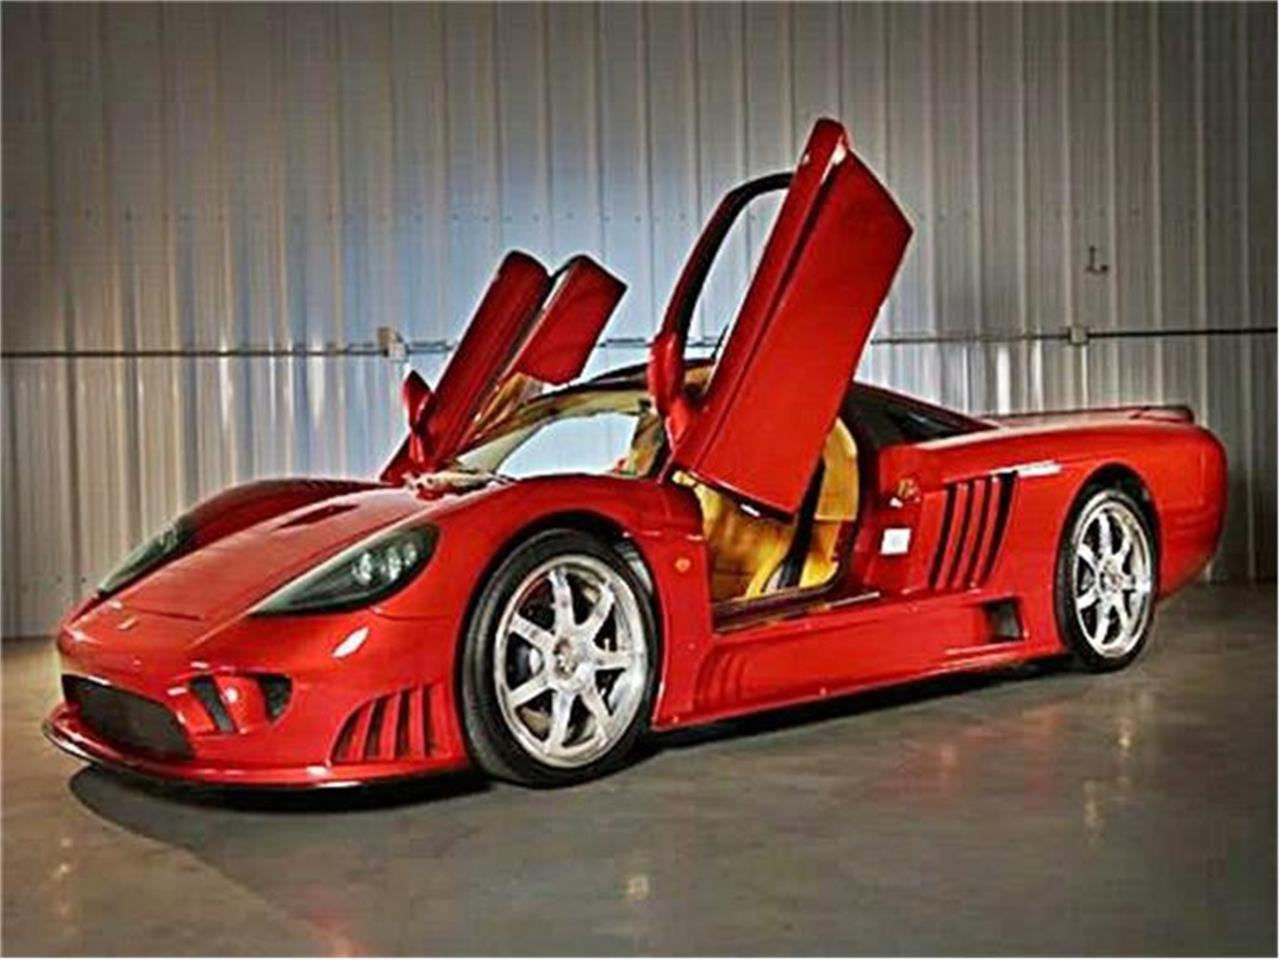 Saleen S7 For Sale >> 2003 Saleen S7 For Sale Classiccars Com Cc 635707